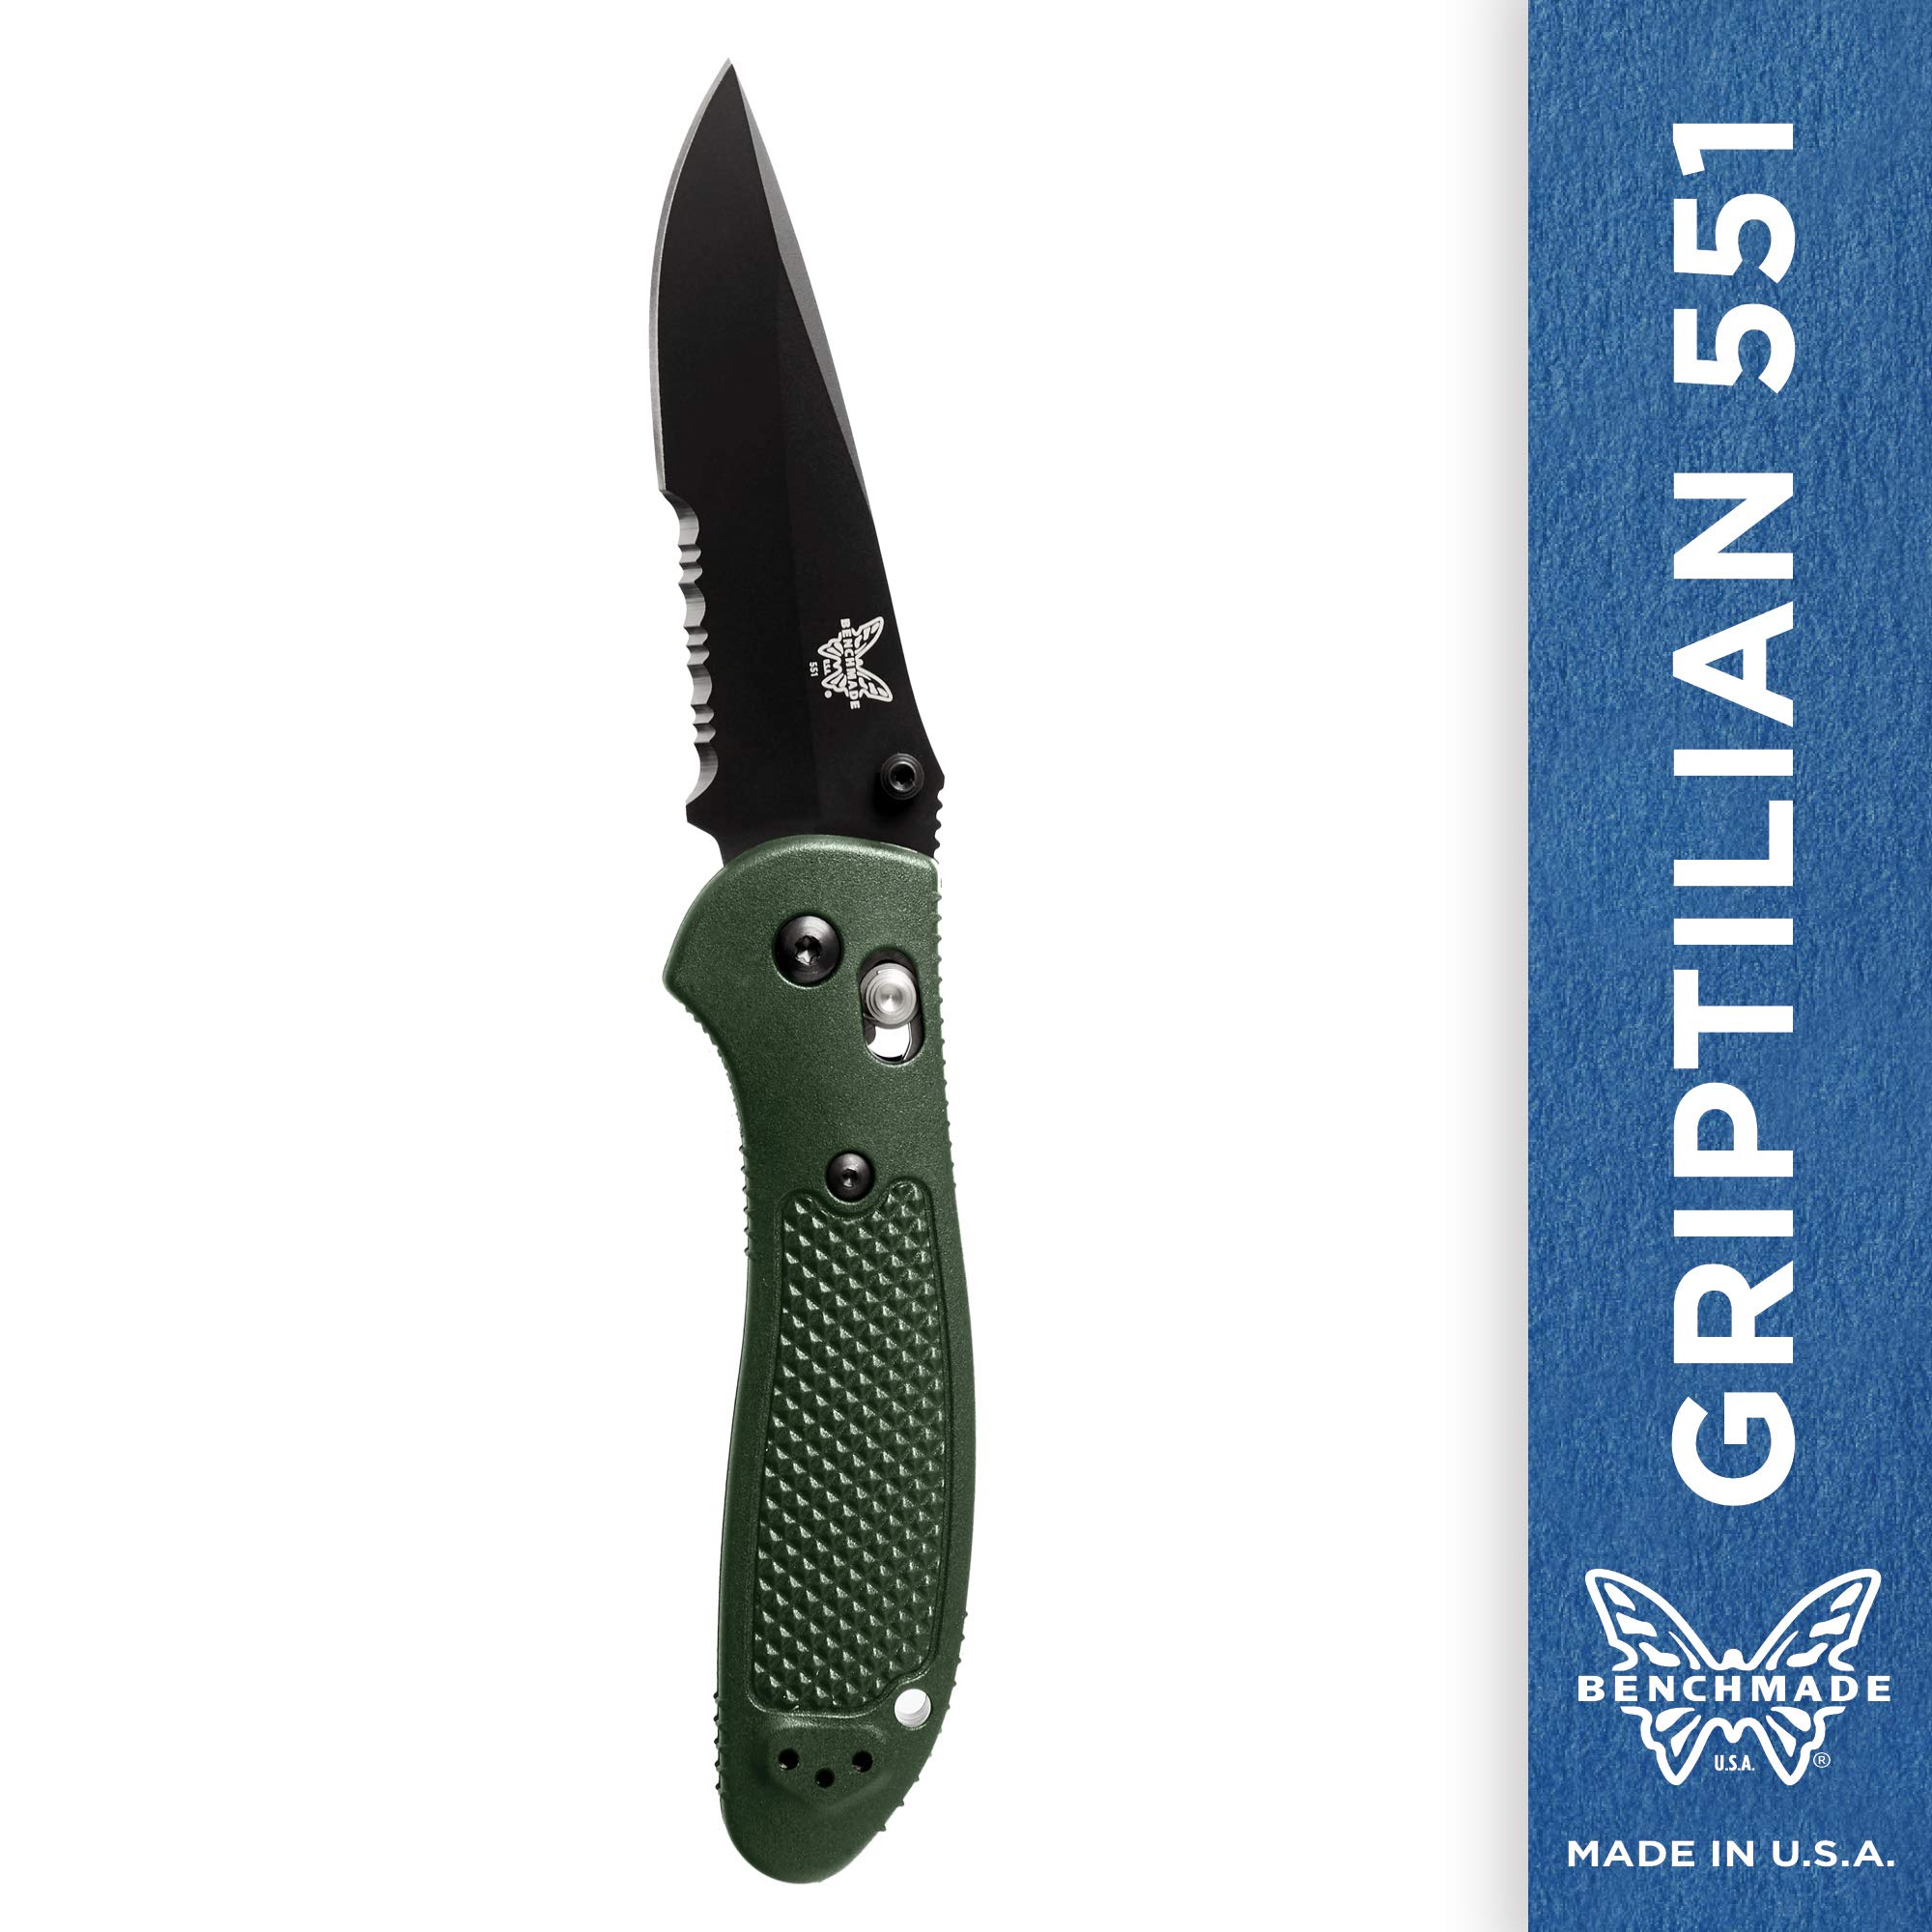 Benchmade - Griptilian 551 Knife with CPM-S30V Steel, Drop-Point Blade, Serrated Edge, Coated Finish, Olive Handle by Benchmade (Image #1)